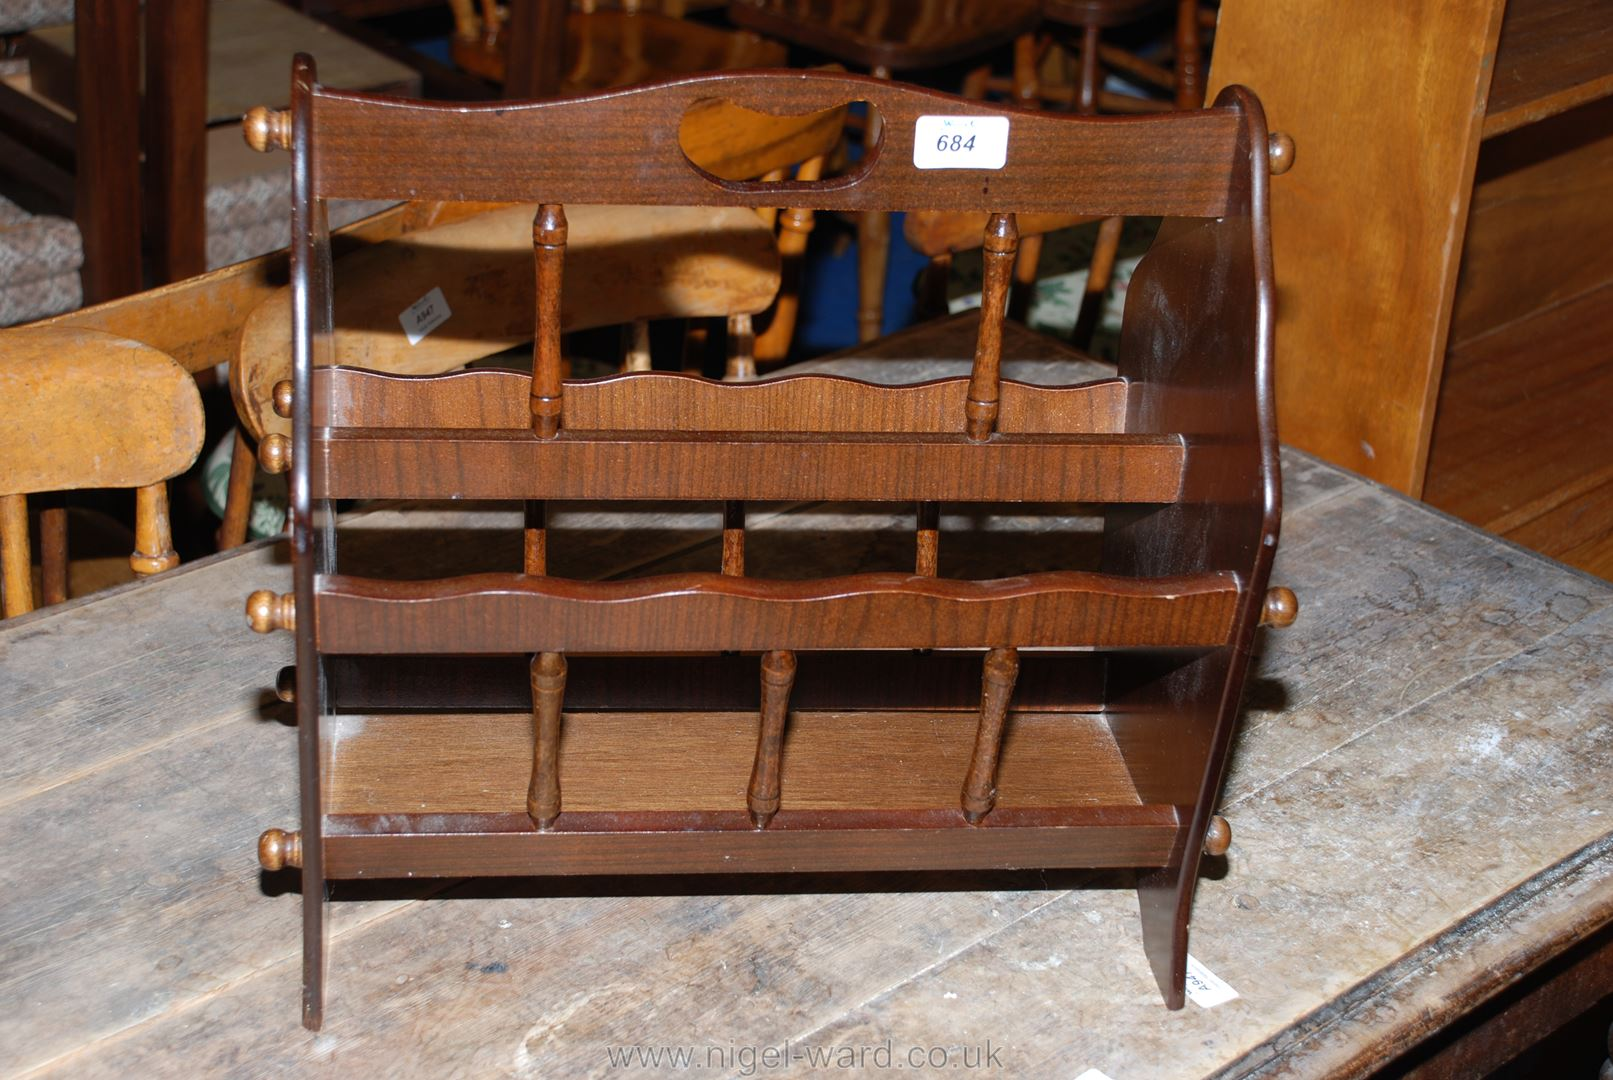 A dark-wood finished two-compartment magazine rack.